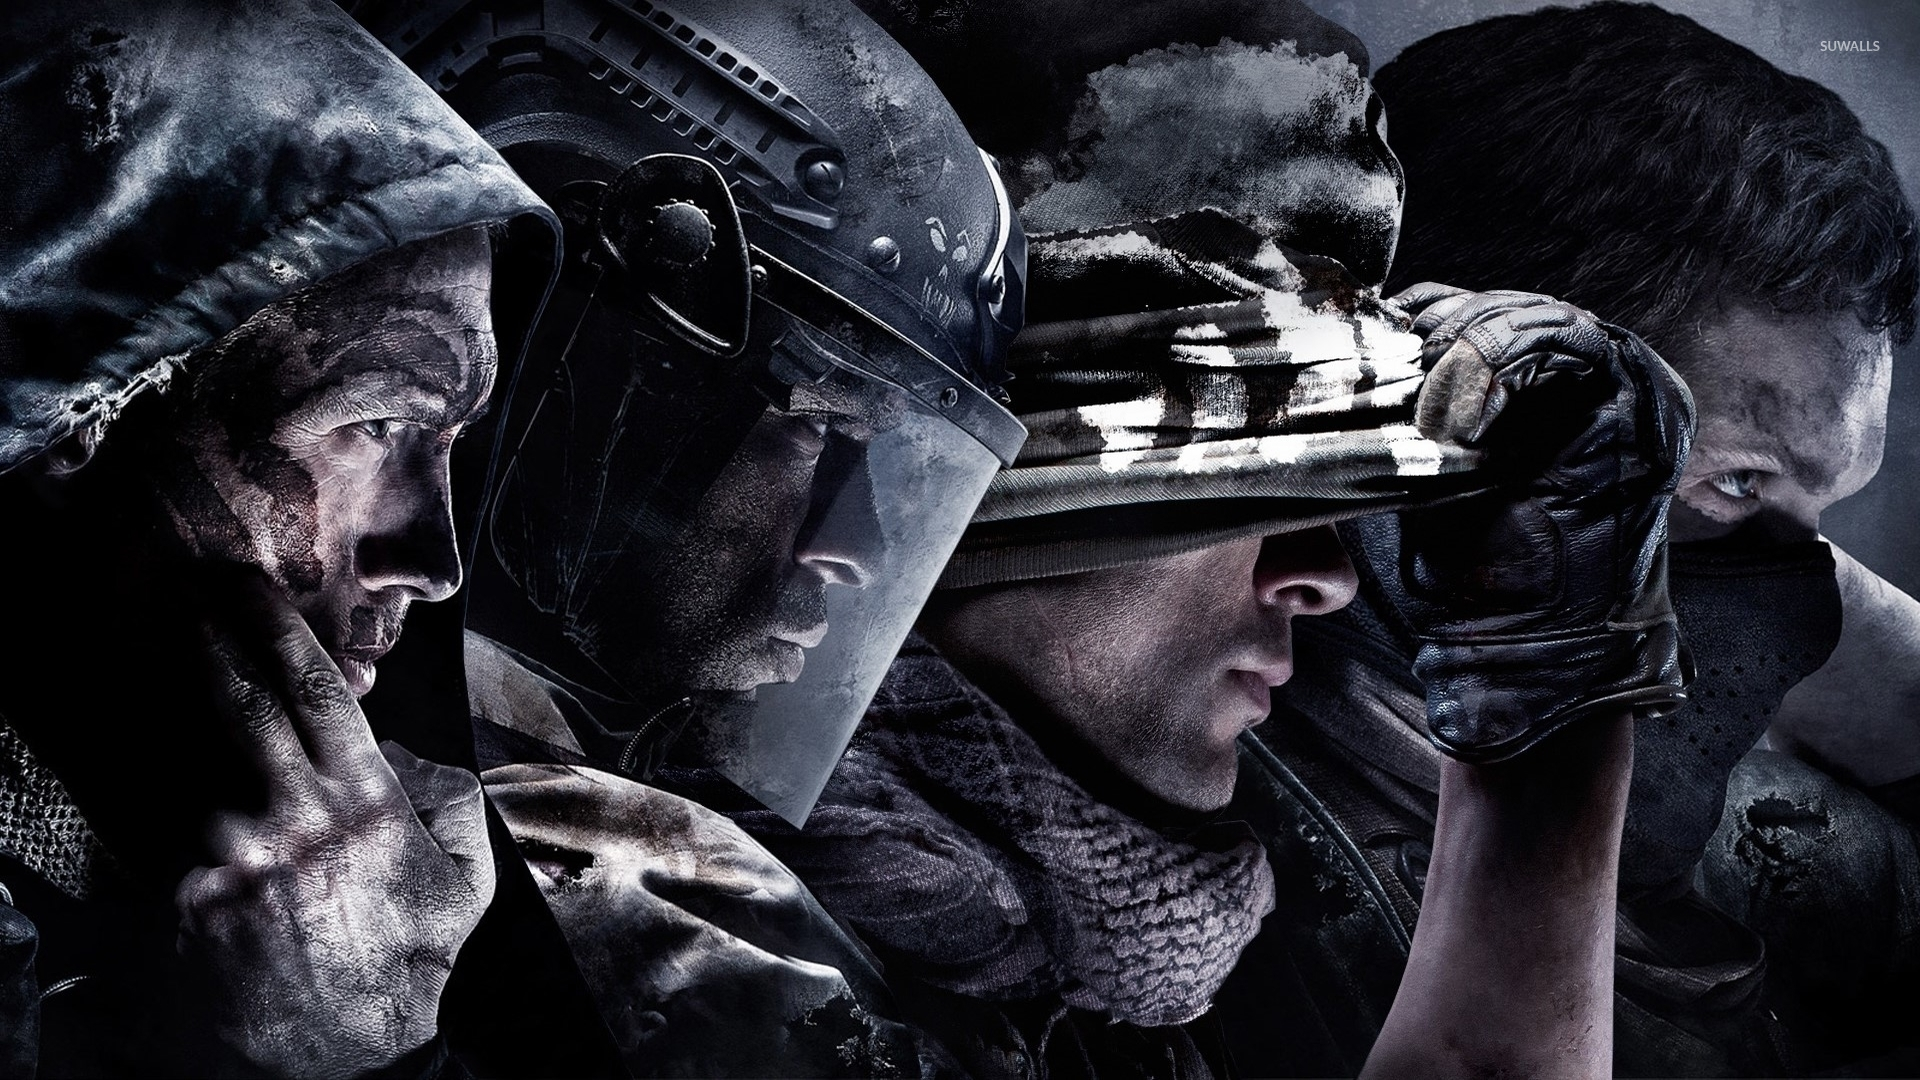 Call Of Duty Ghosts 6 Wallpaper